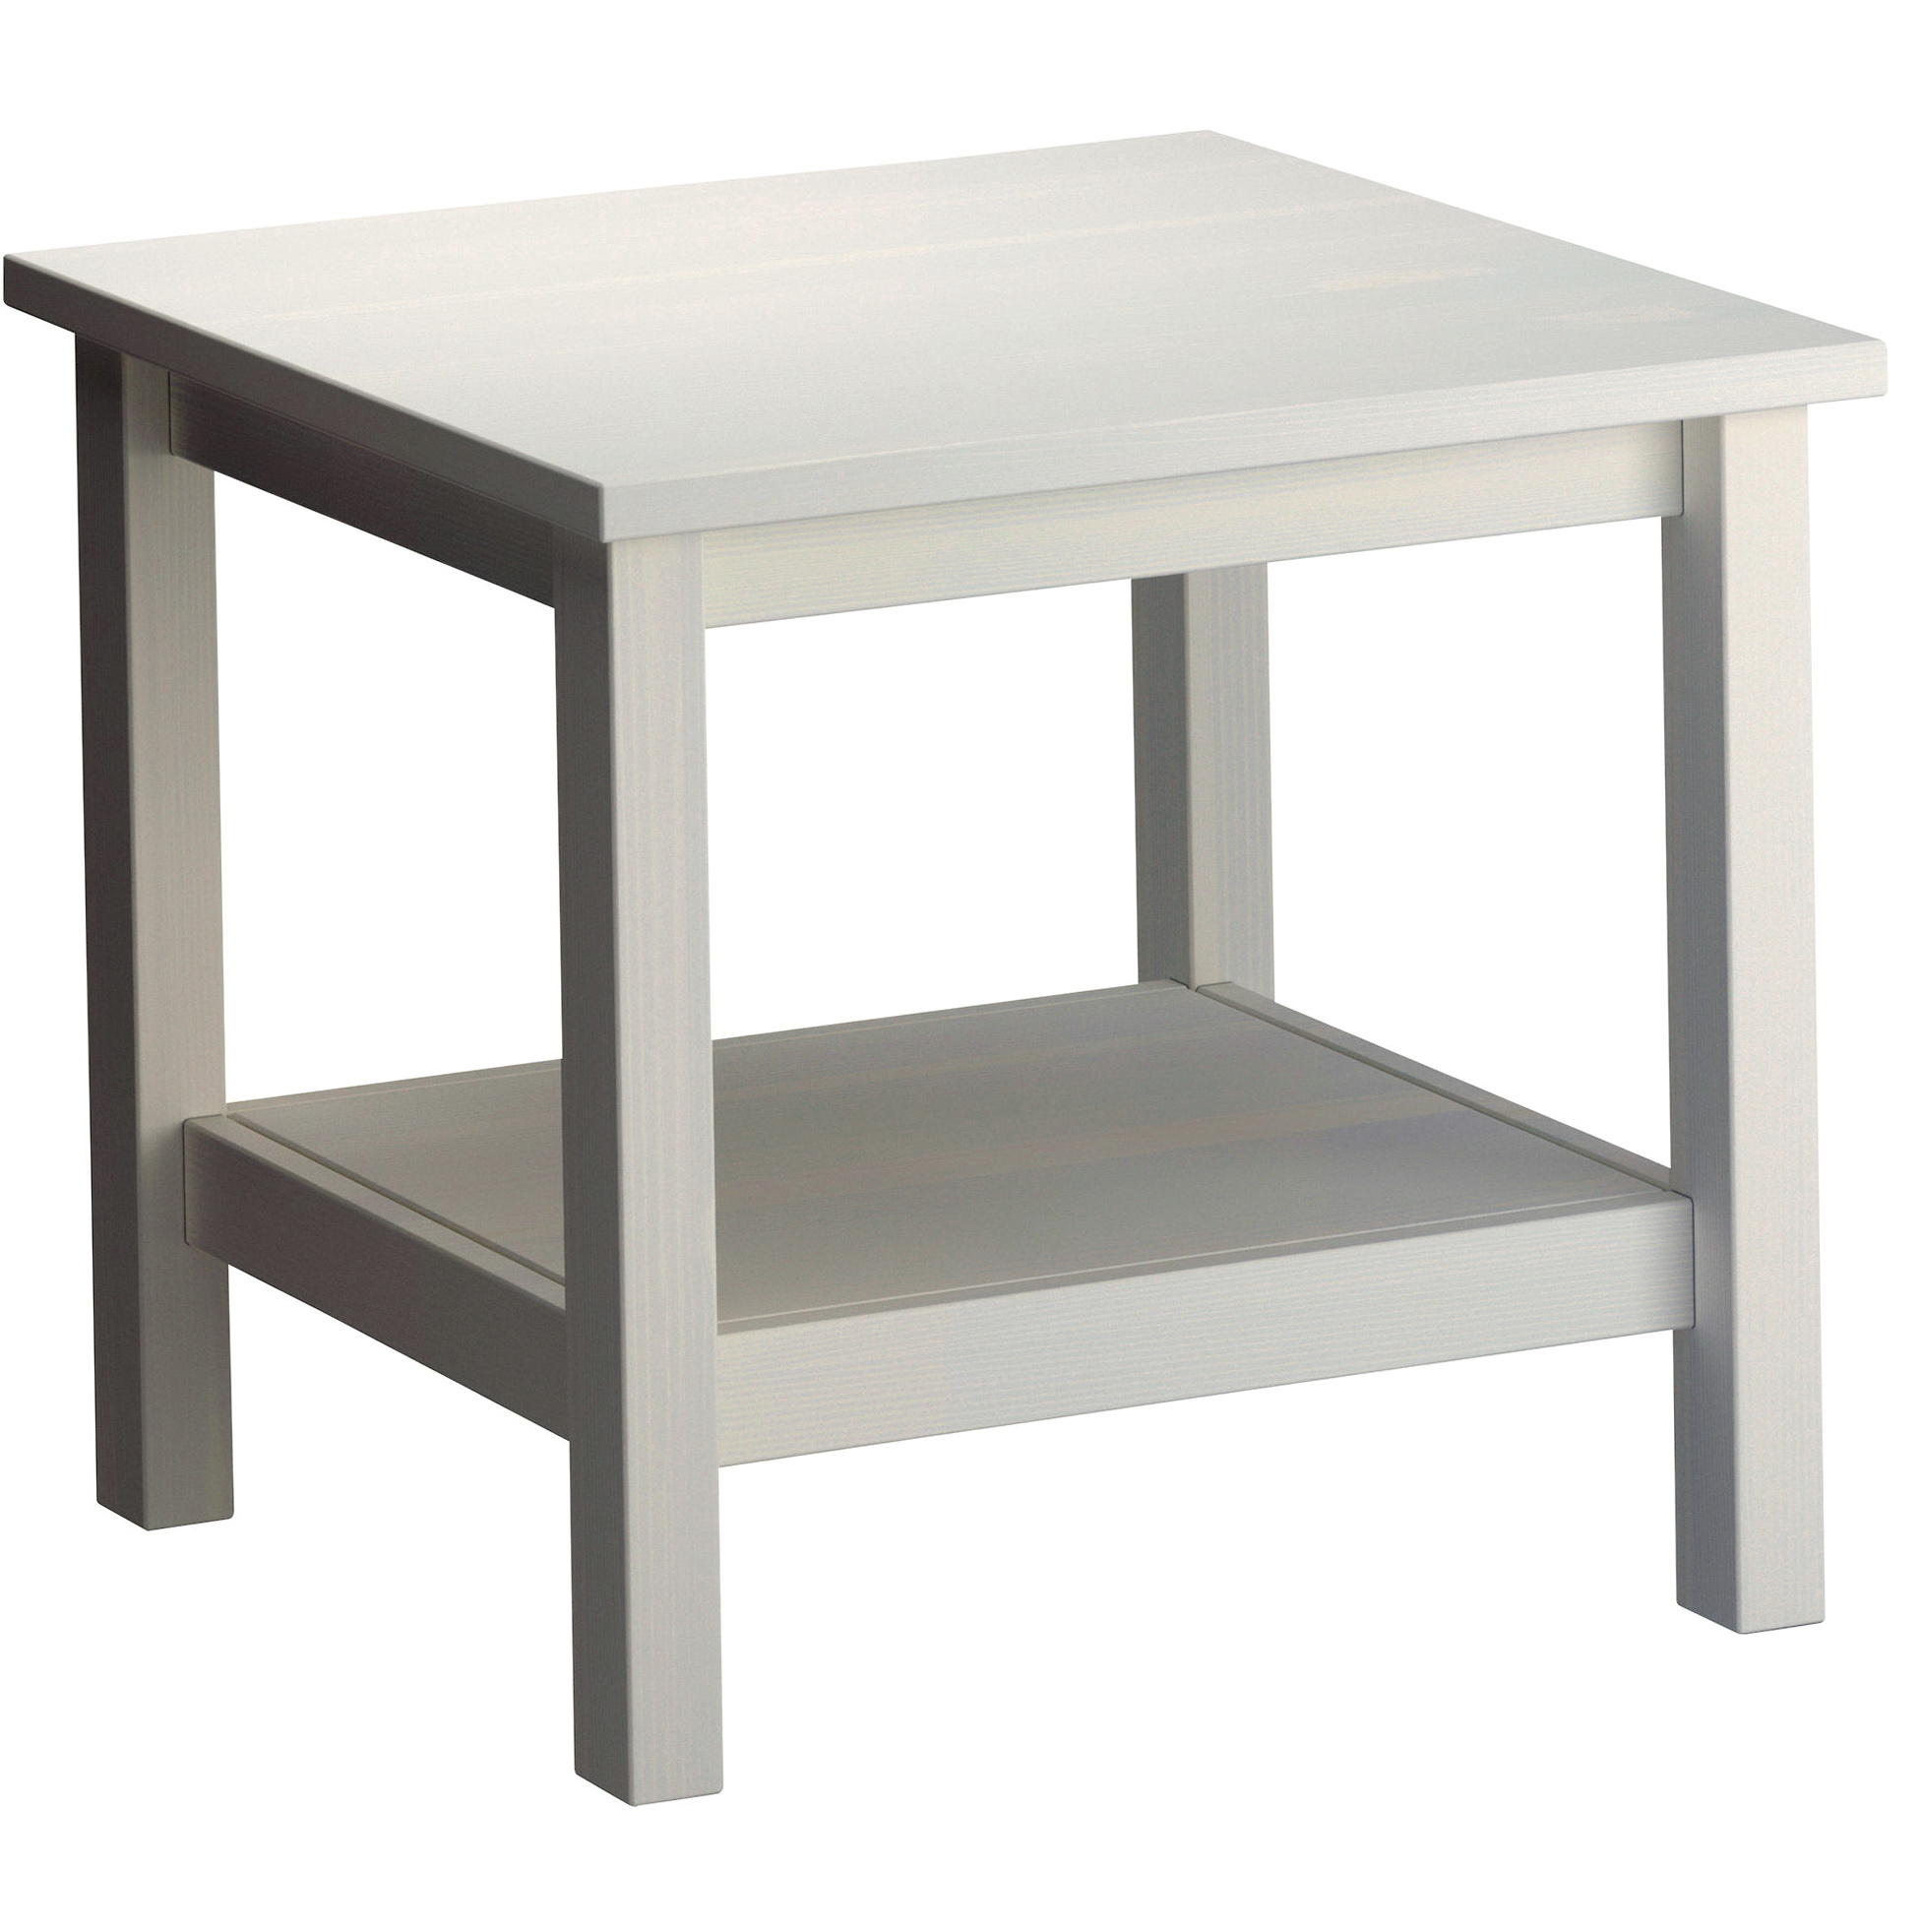 Ikea Side Tables Canada Home Design Ideas